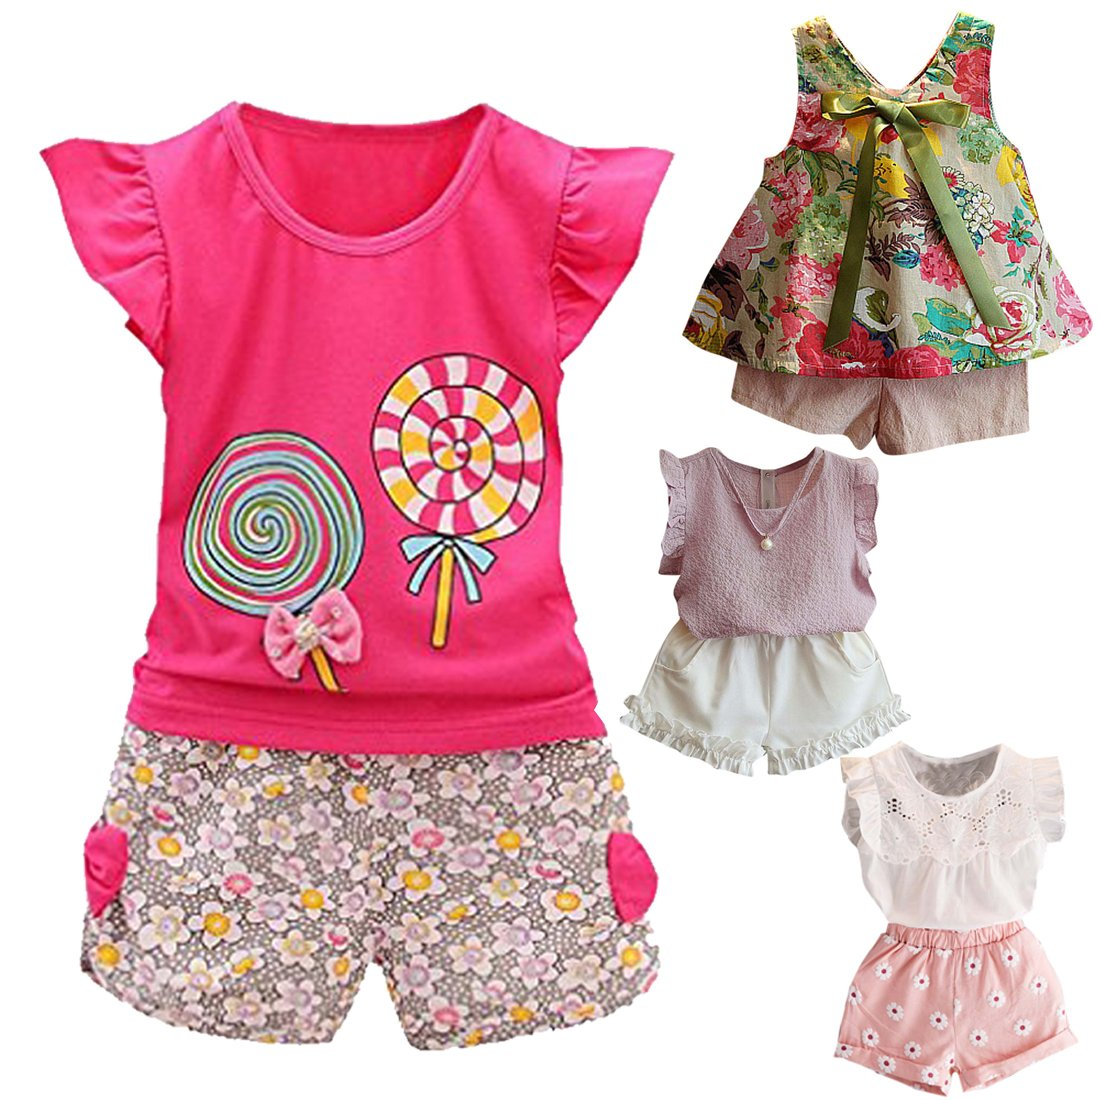 c56ec27c8 Amazon.com: Fabal 2Pc Baby Girl Clothes Summer Tee +Short Pants Kids Girls  Casual Outfits Lolly: Clothing